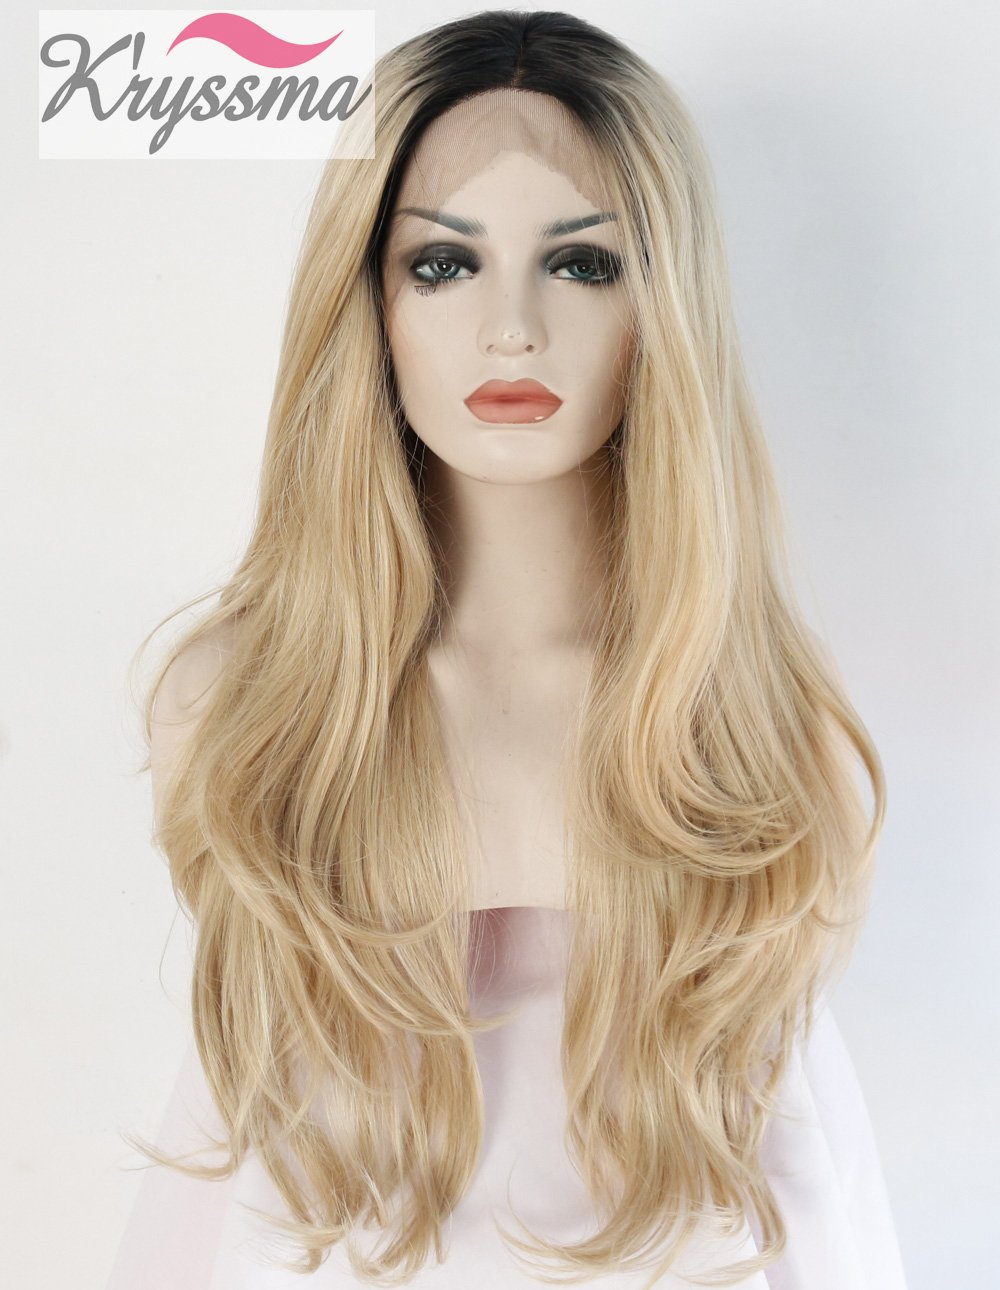 K'ryssma Ombre Blonde Lace Front Wigs For Women 2 Tone Black Roots Long Natural Wavy Heat Resistant Synthetic Wig 24 inches K' ryssma